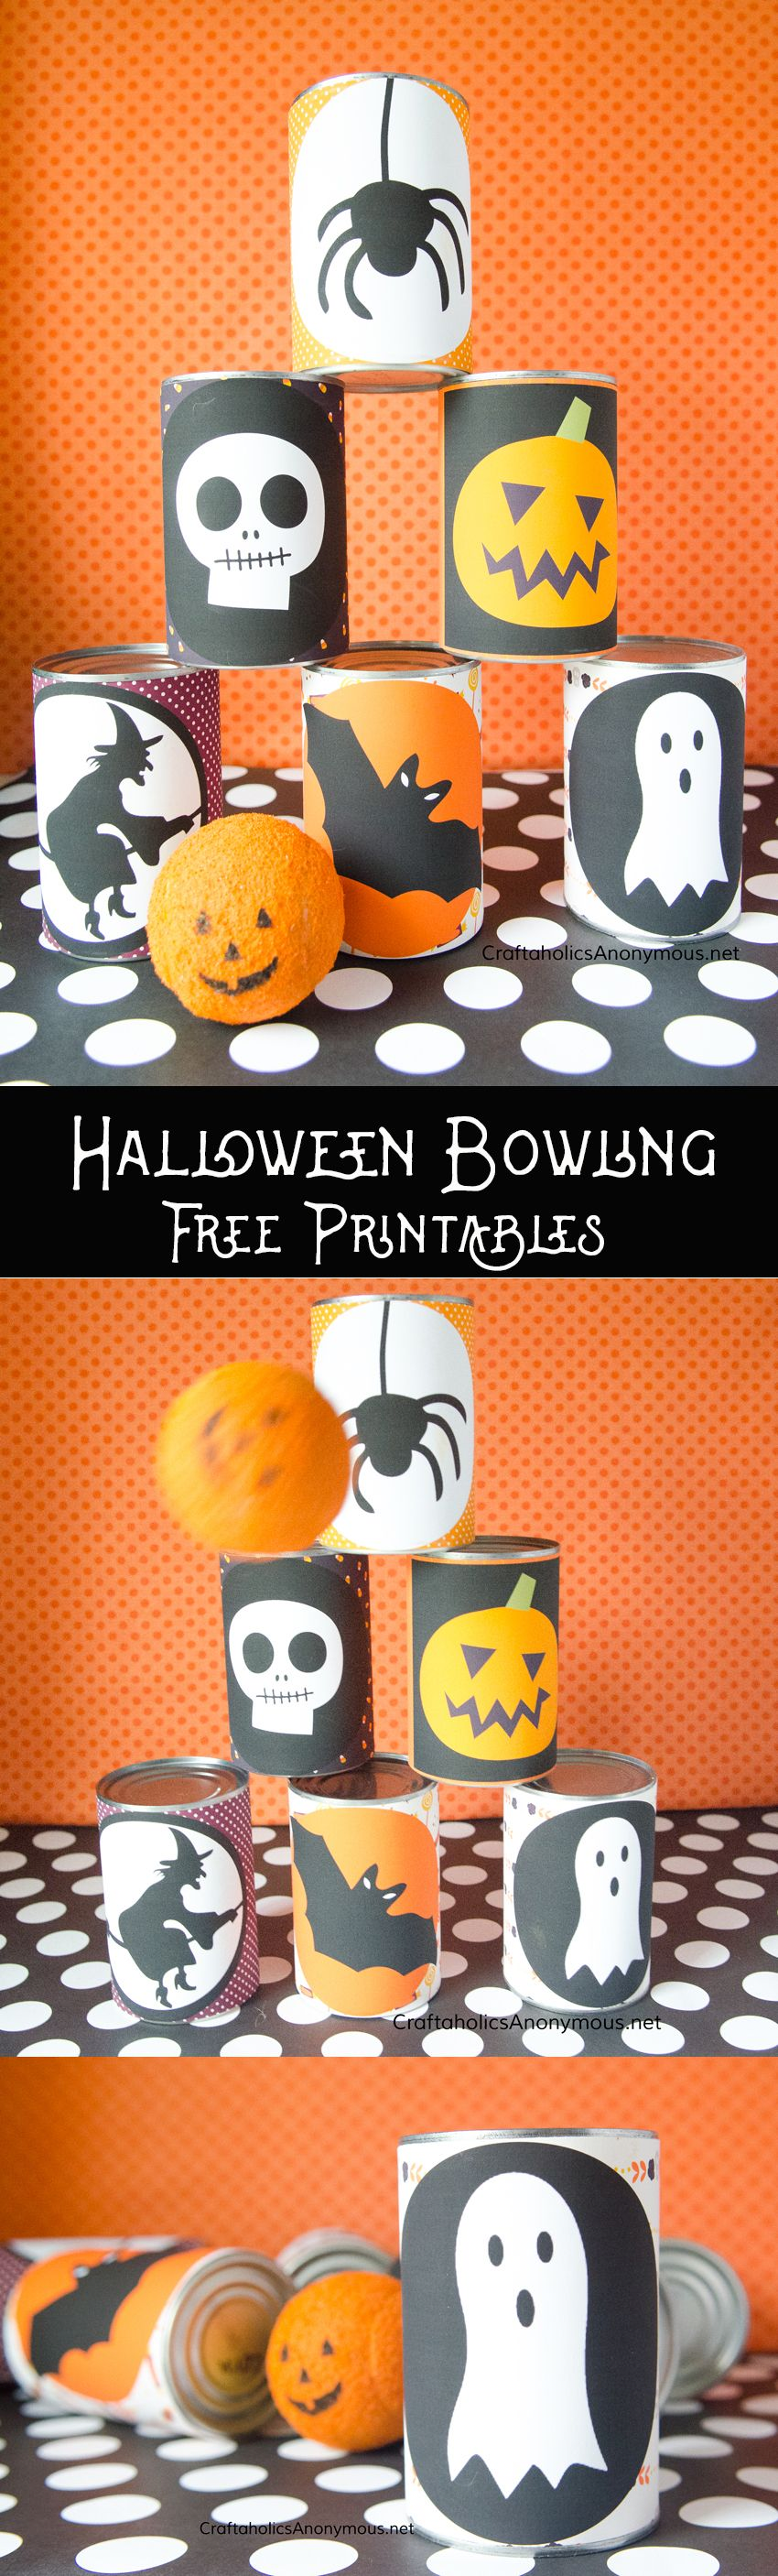 DIY Halloween Bowling Game with Free Printables | Game ideas, DIY ...